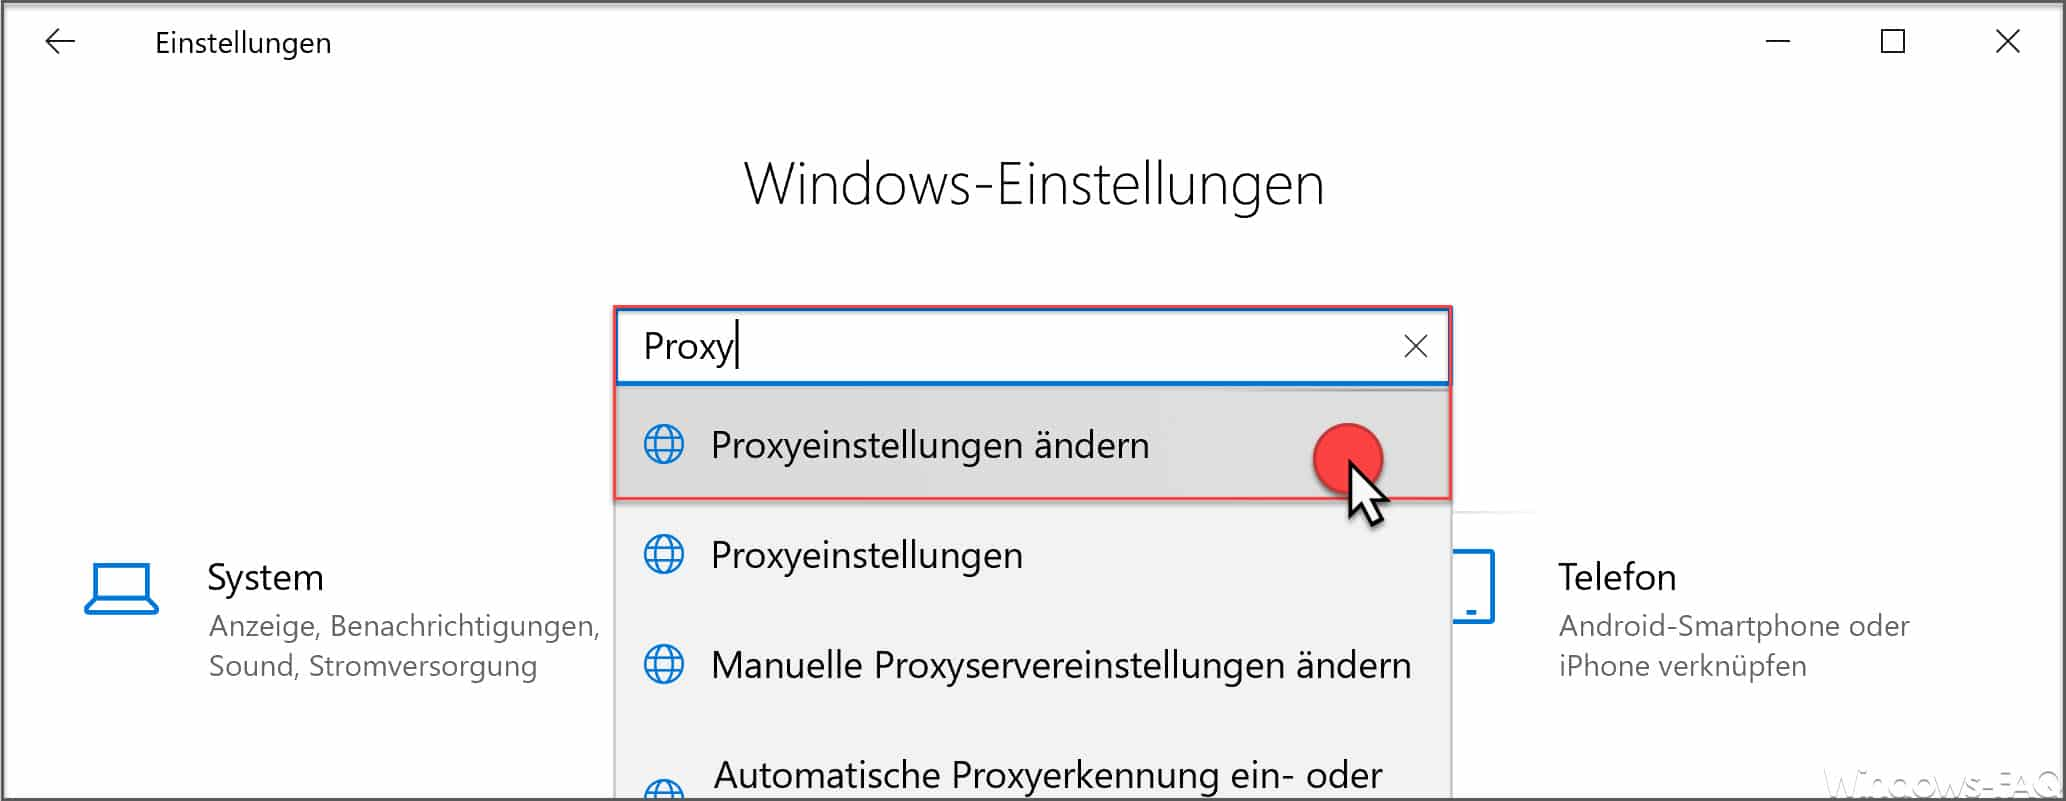 Proxyeinstellungen ändern Windows 10